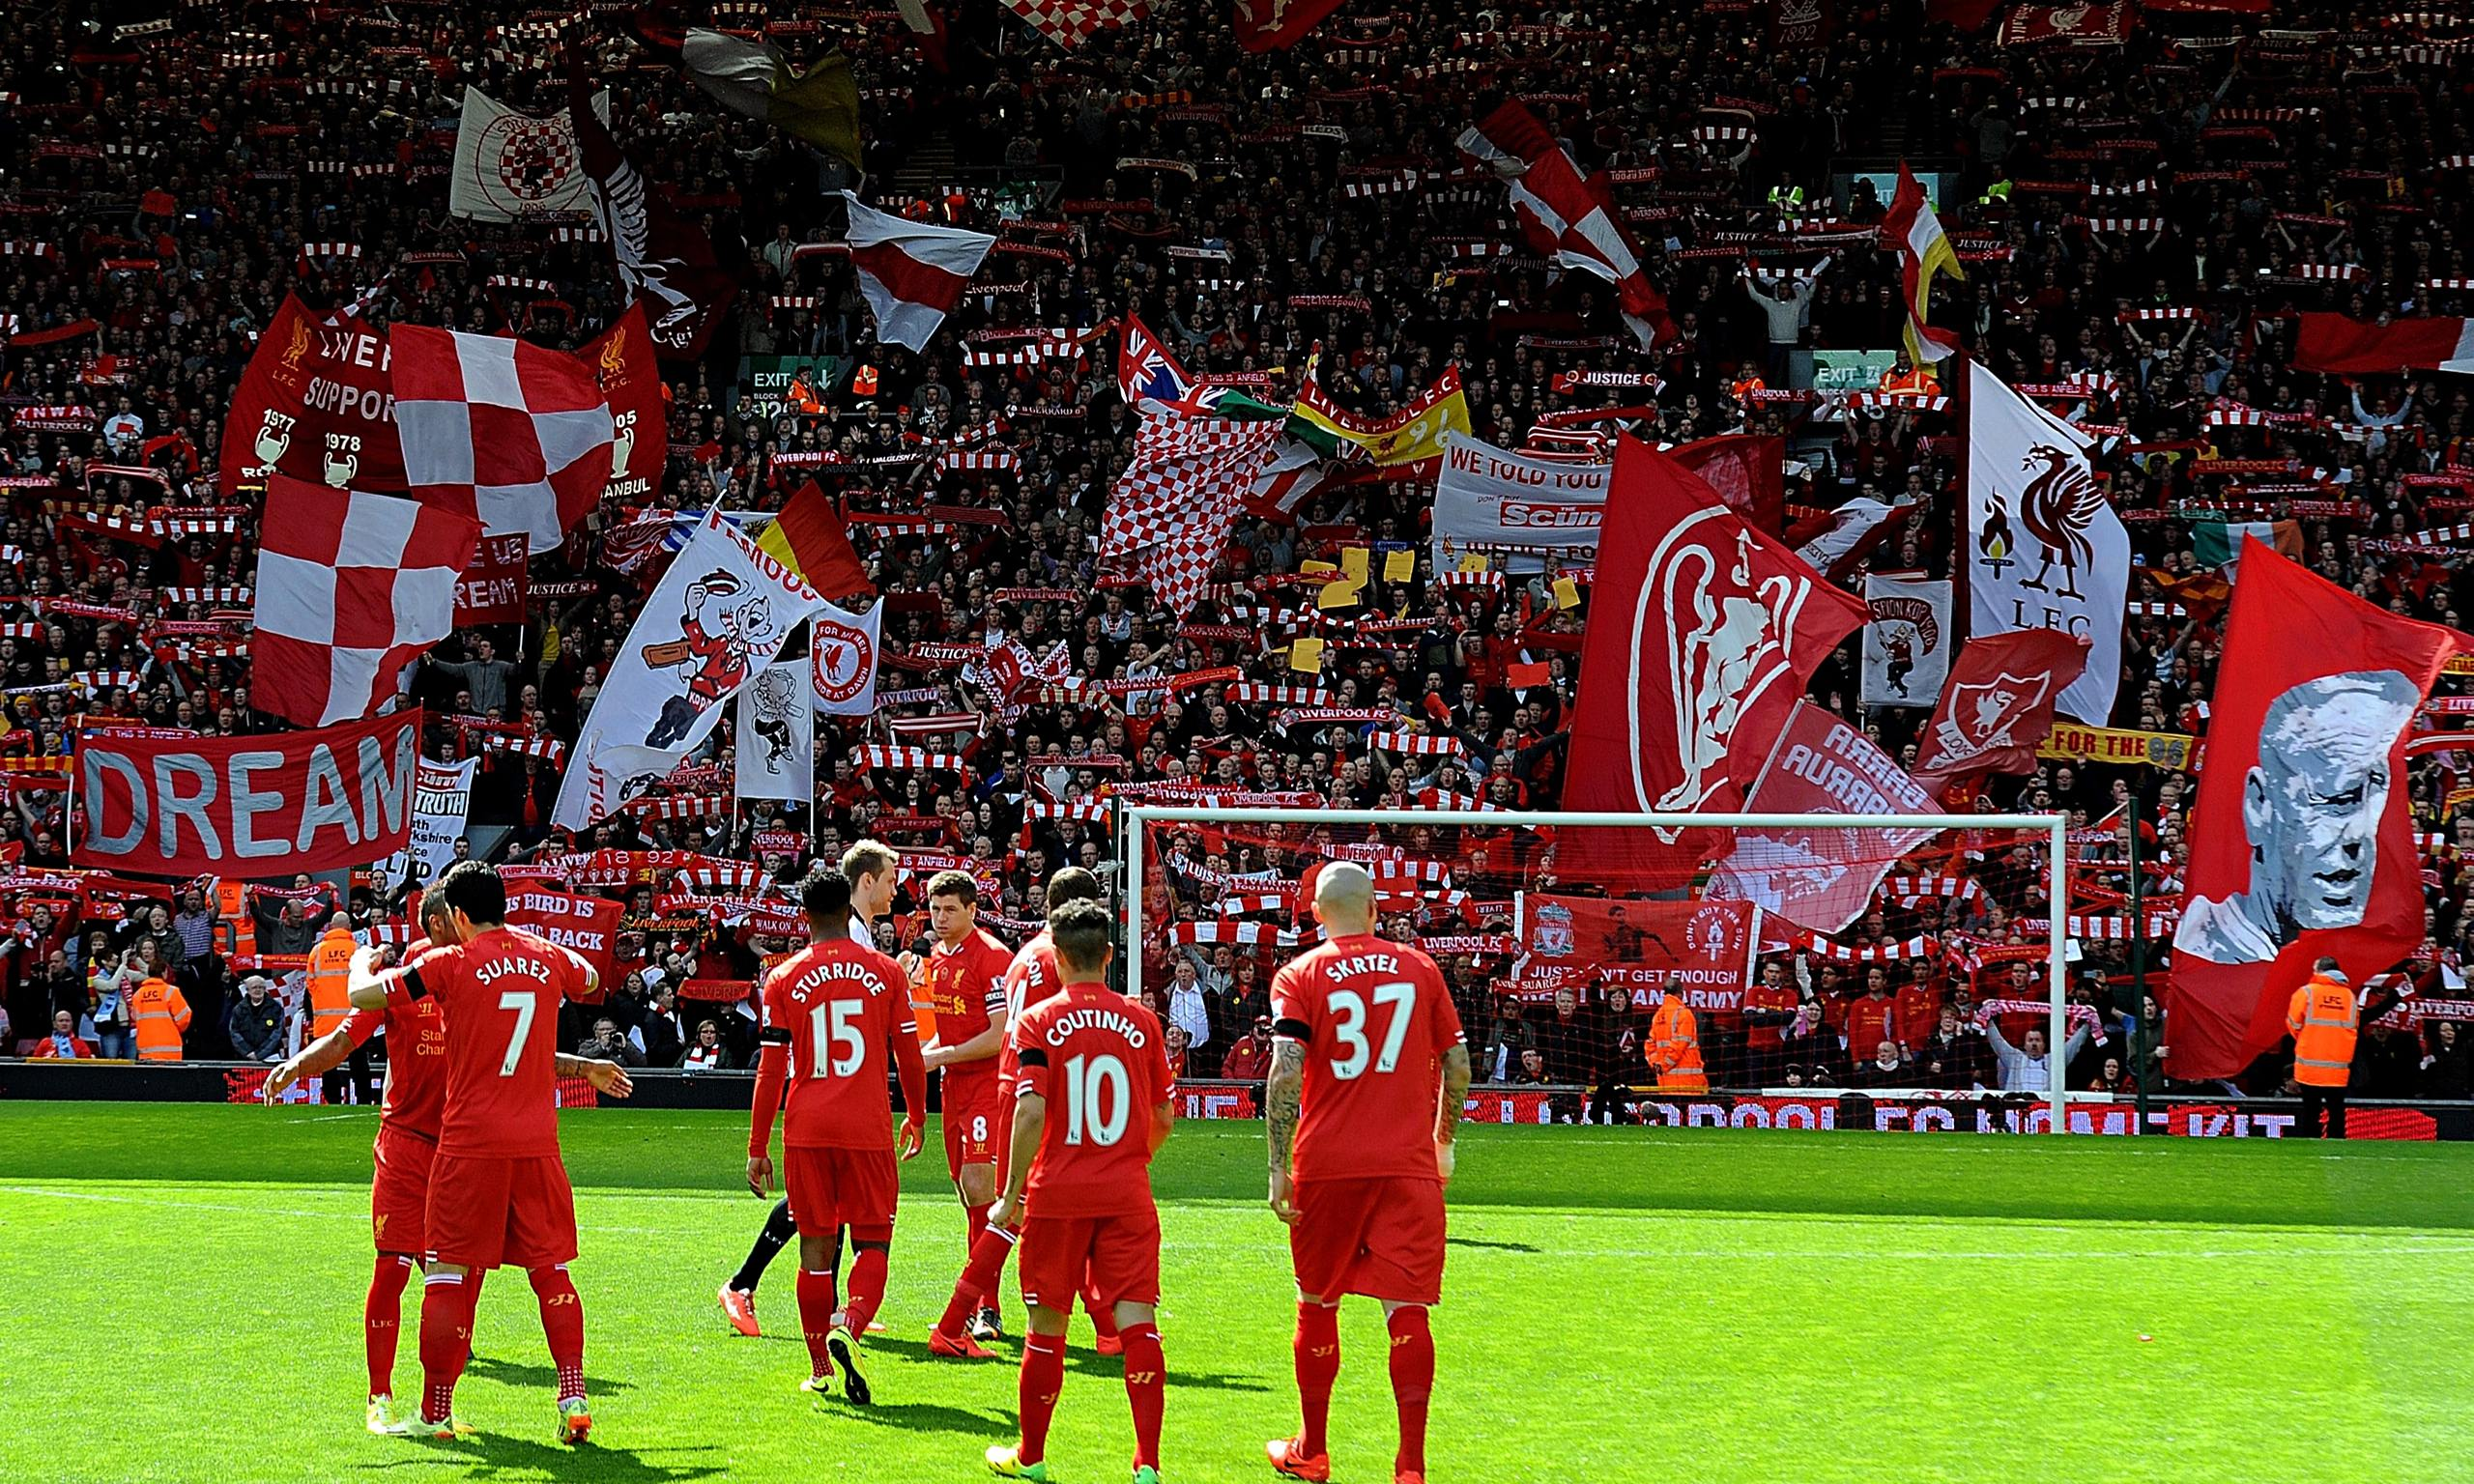 With hope in their hearts: Liverpool dare to dream once ...